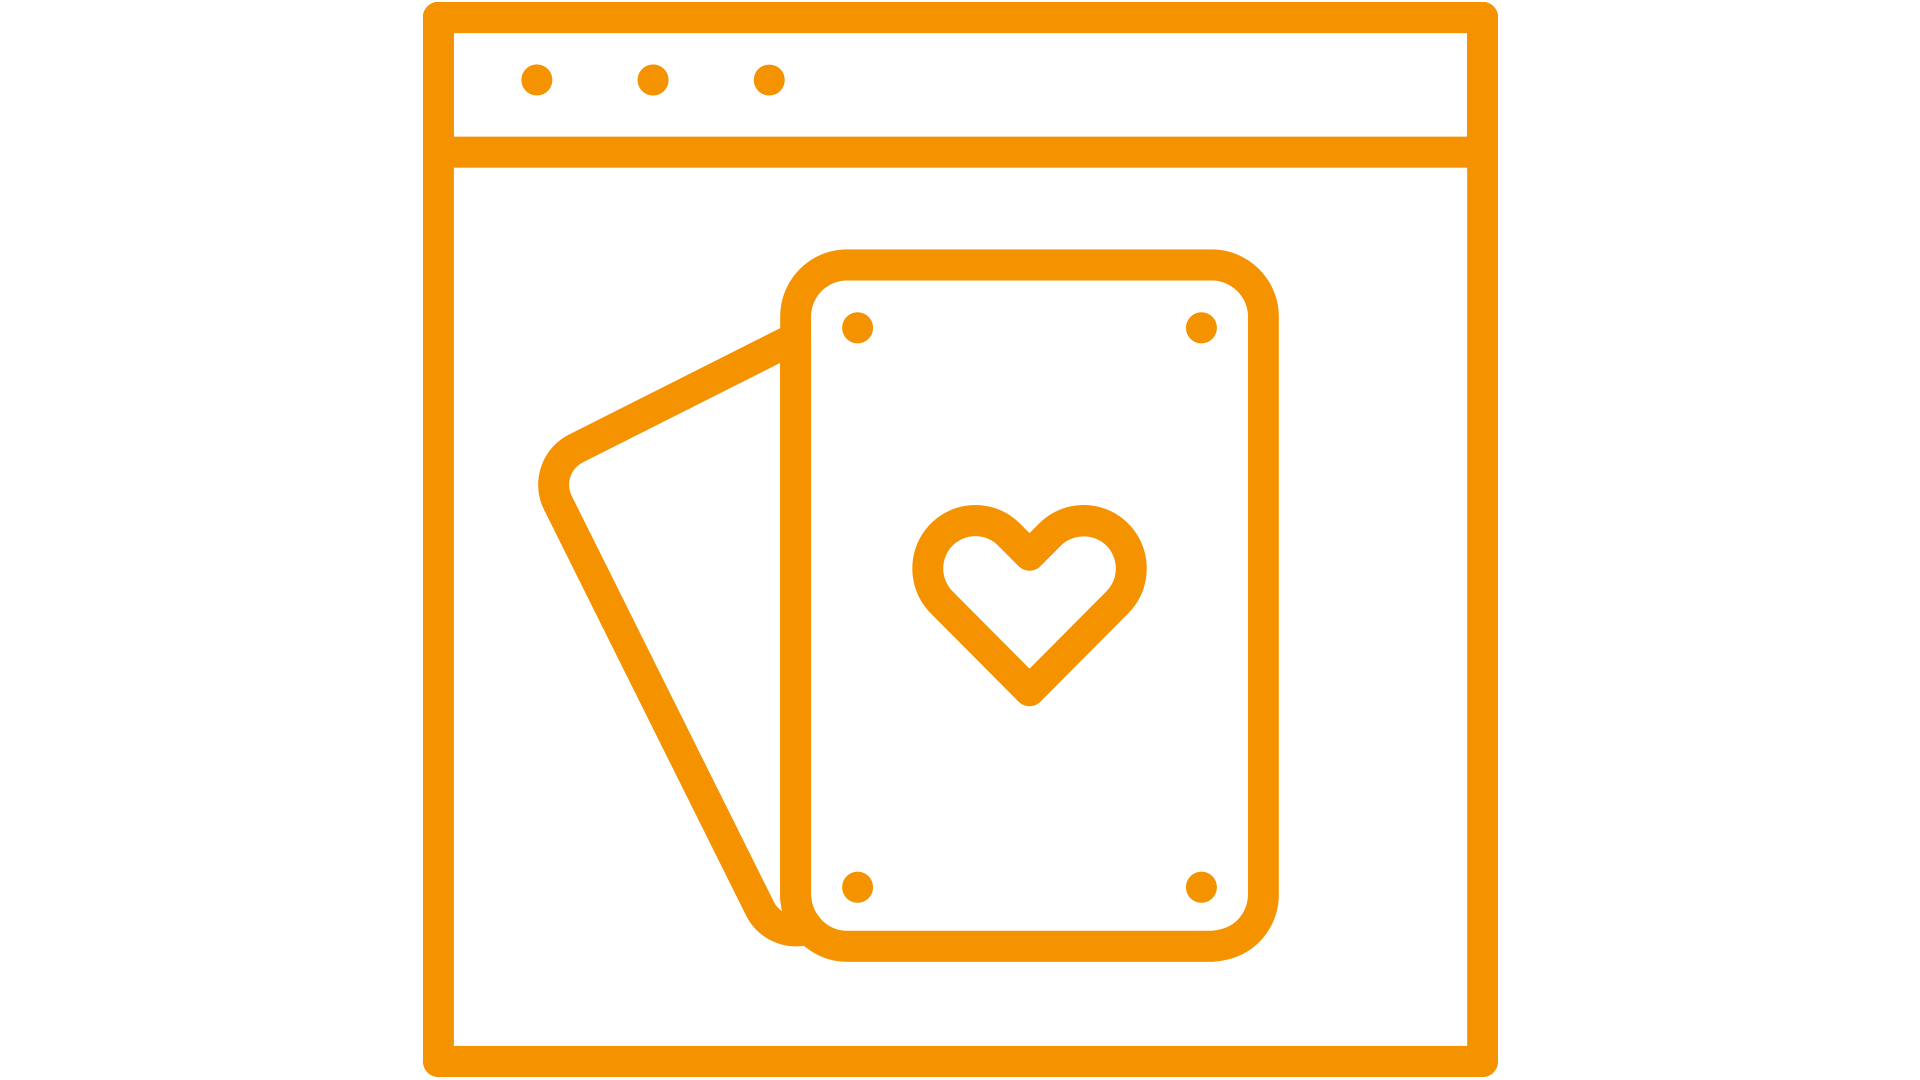 pictogram of a gaming- cards